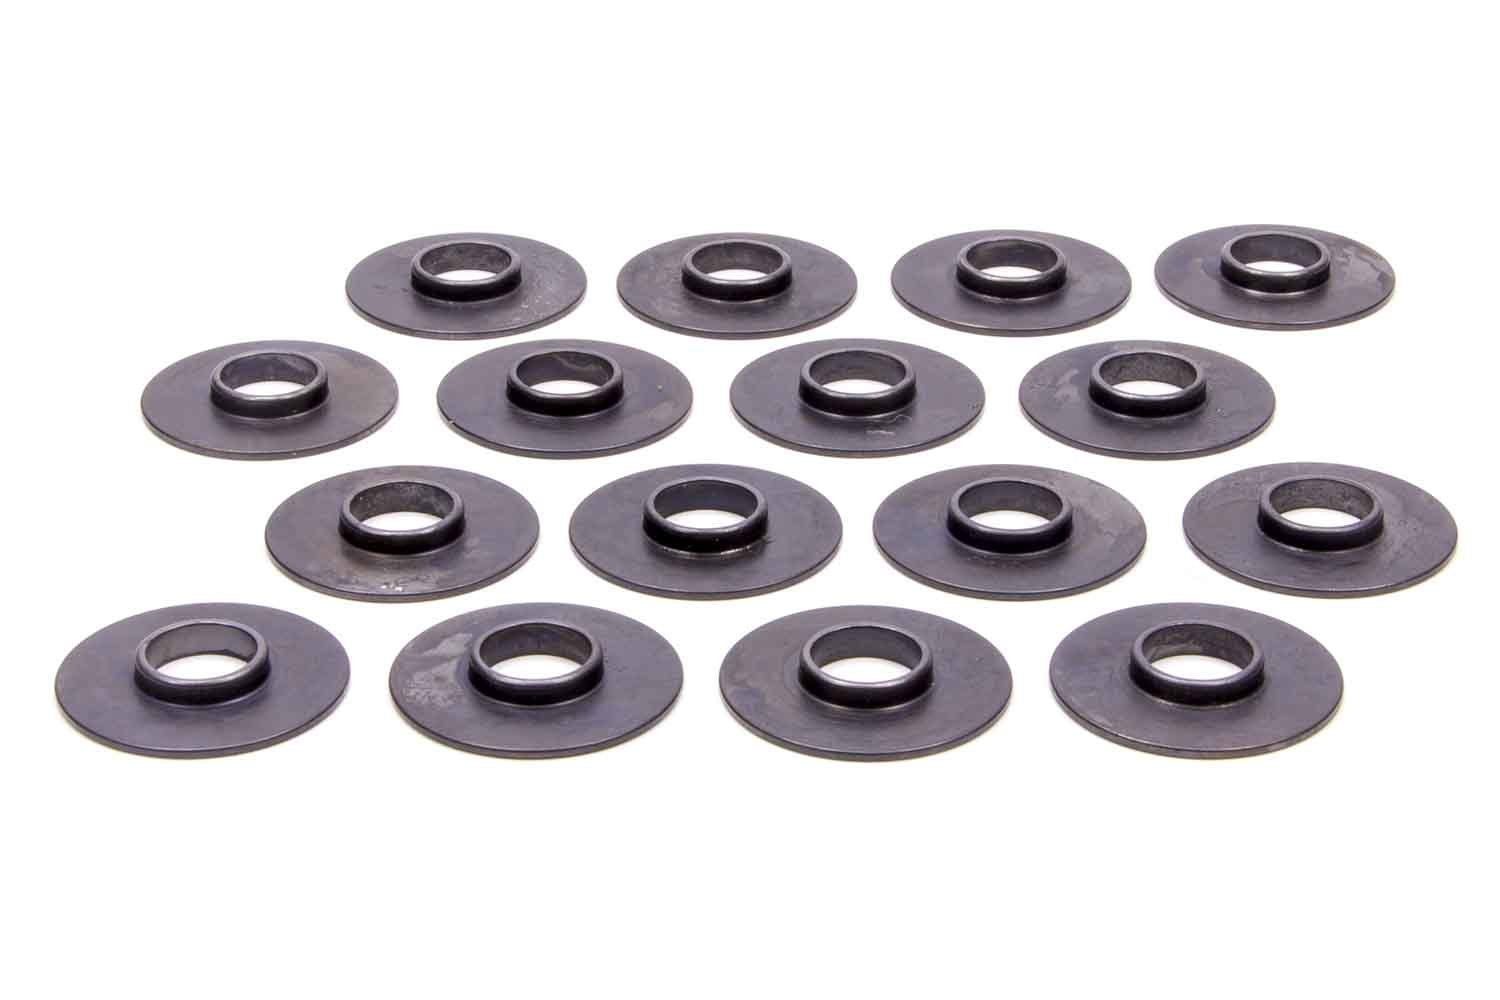 PAC Racing Springs PAC-S101 Valve Spring Locator, Inside, 0.060 in Thick, 1.550 in OD, 0.575 in ID, 0.855 in Spring ID, Chromoly, Set of 16